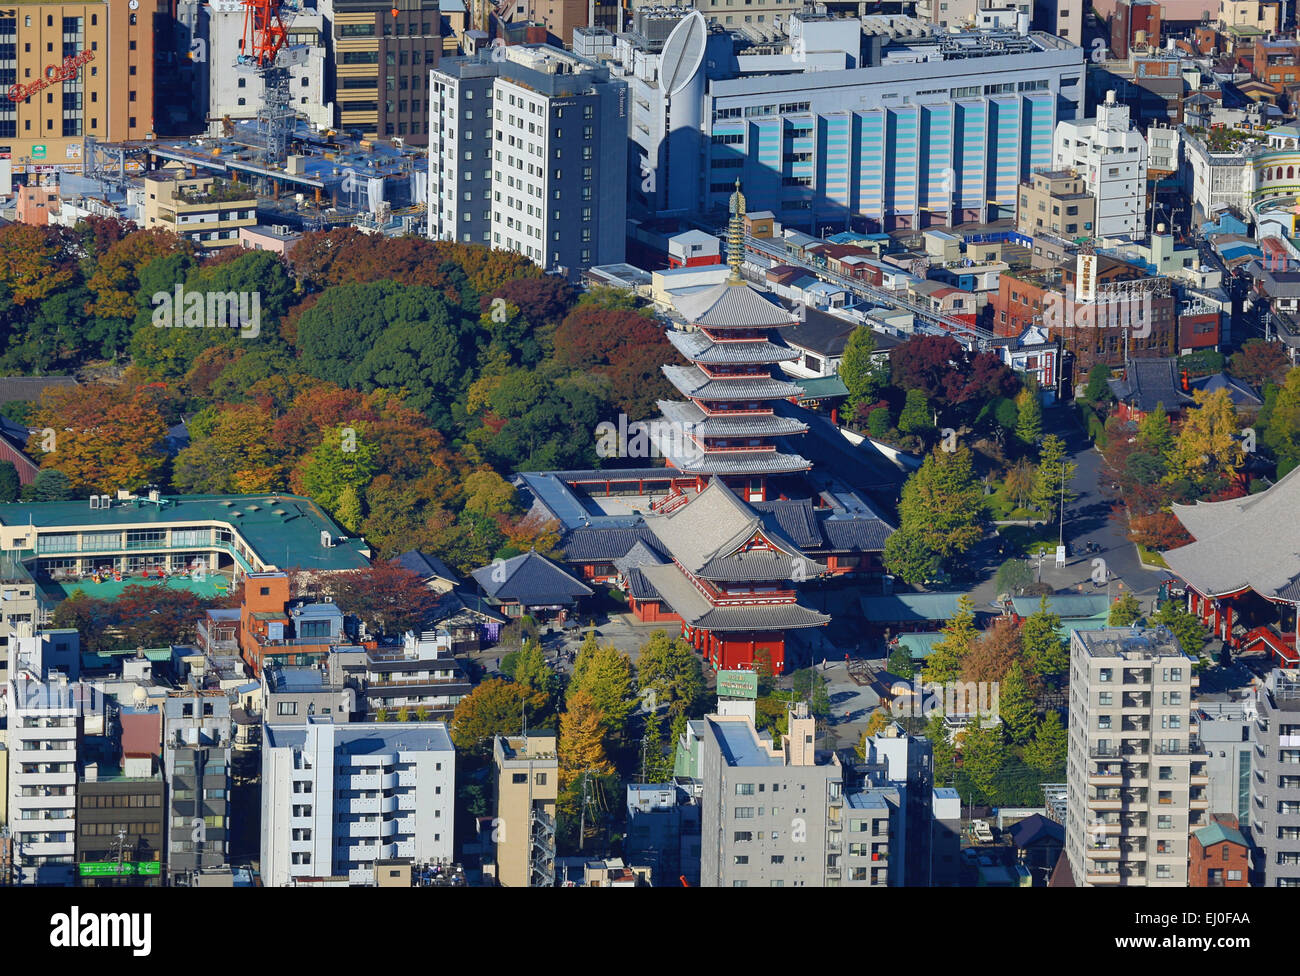 Asakusa, District, City, Japan, Asia, Kanto, Sensoji, Tokyo, aerial, architecture, autumn, colourful, fall, no people, - Stock Image